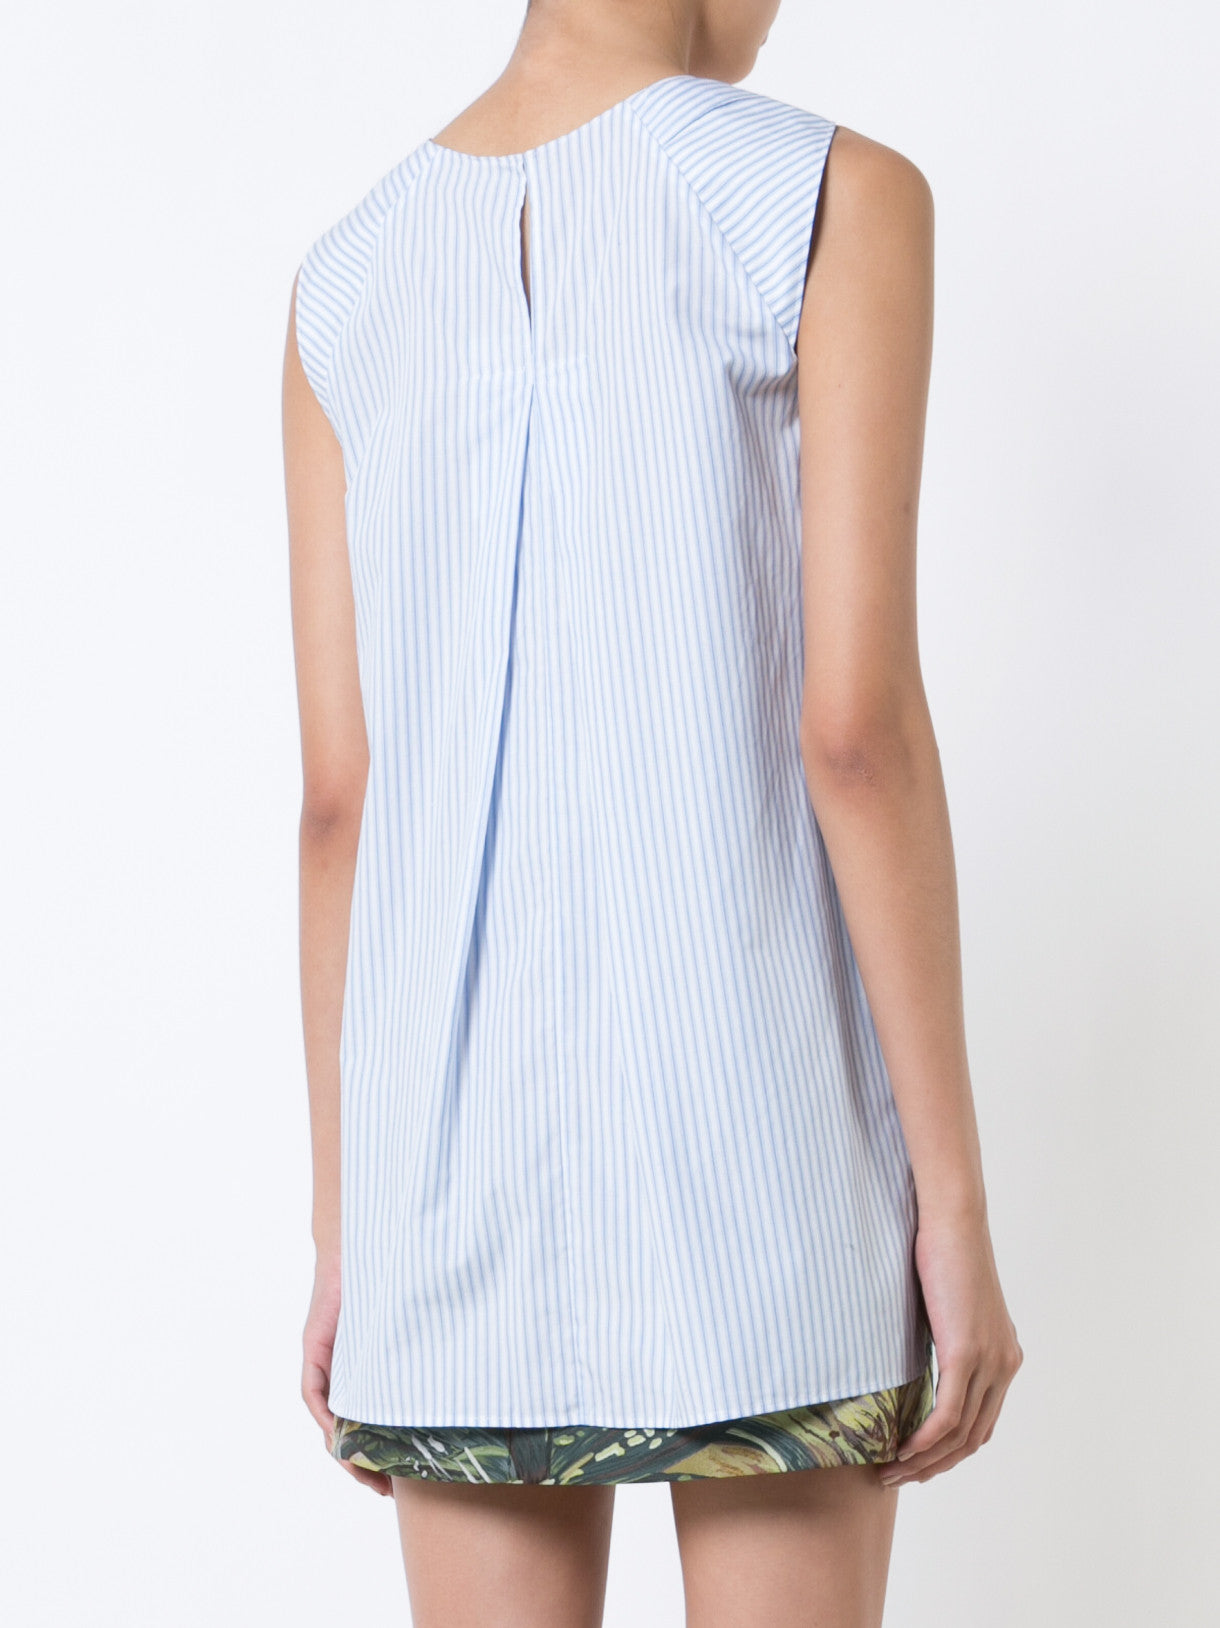 Stripped Cotton Sleeveless Tunic